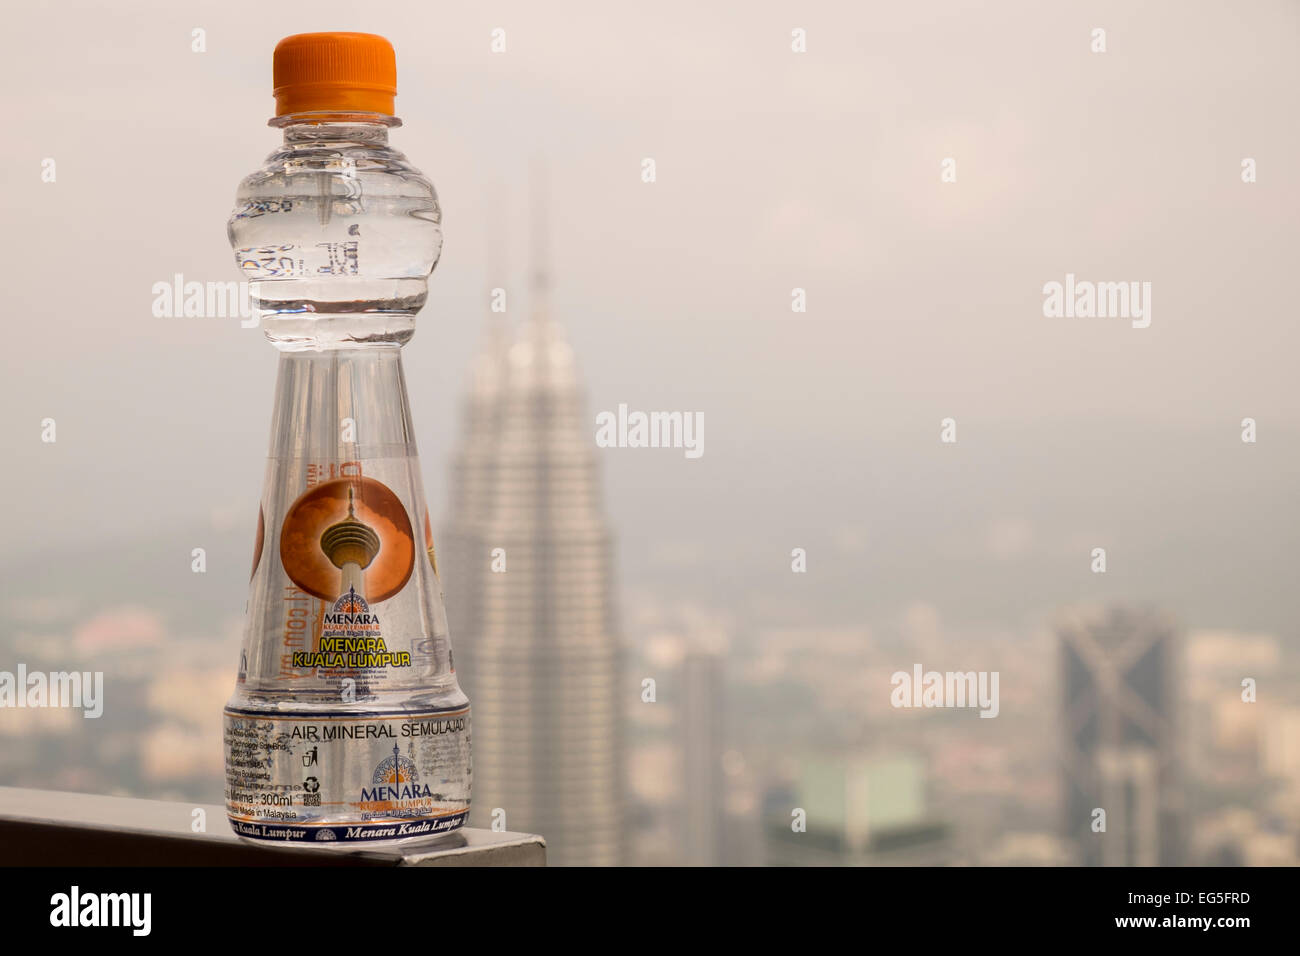 KL tower branded water bottle observation deck Kuala Lumpur Malaysia on a day with high humidity and hazy skies - Stock Image